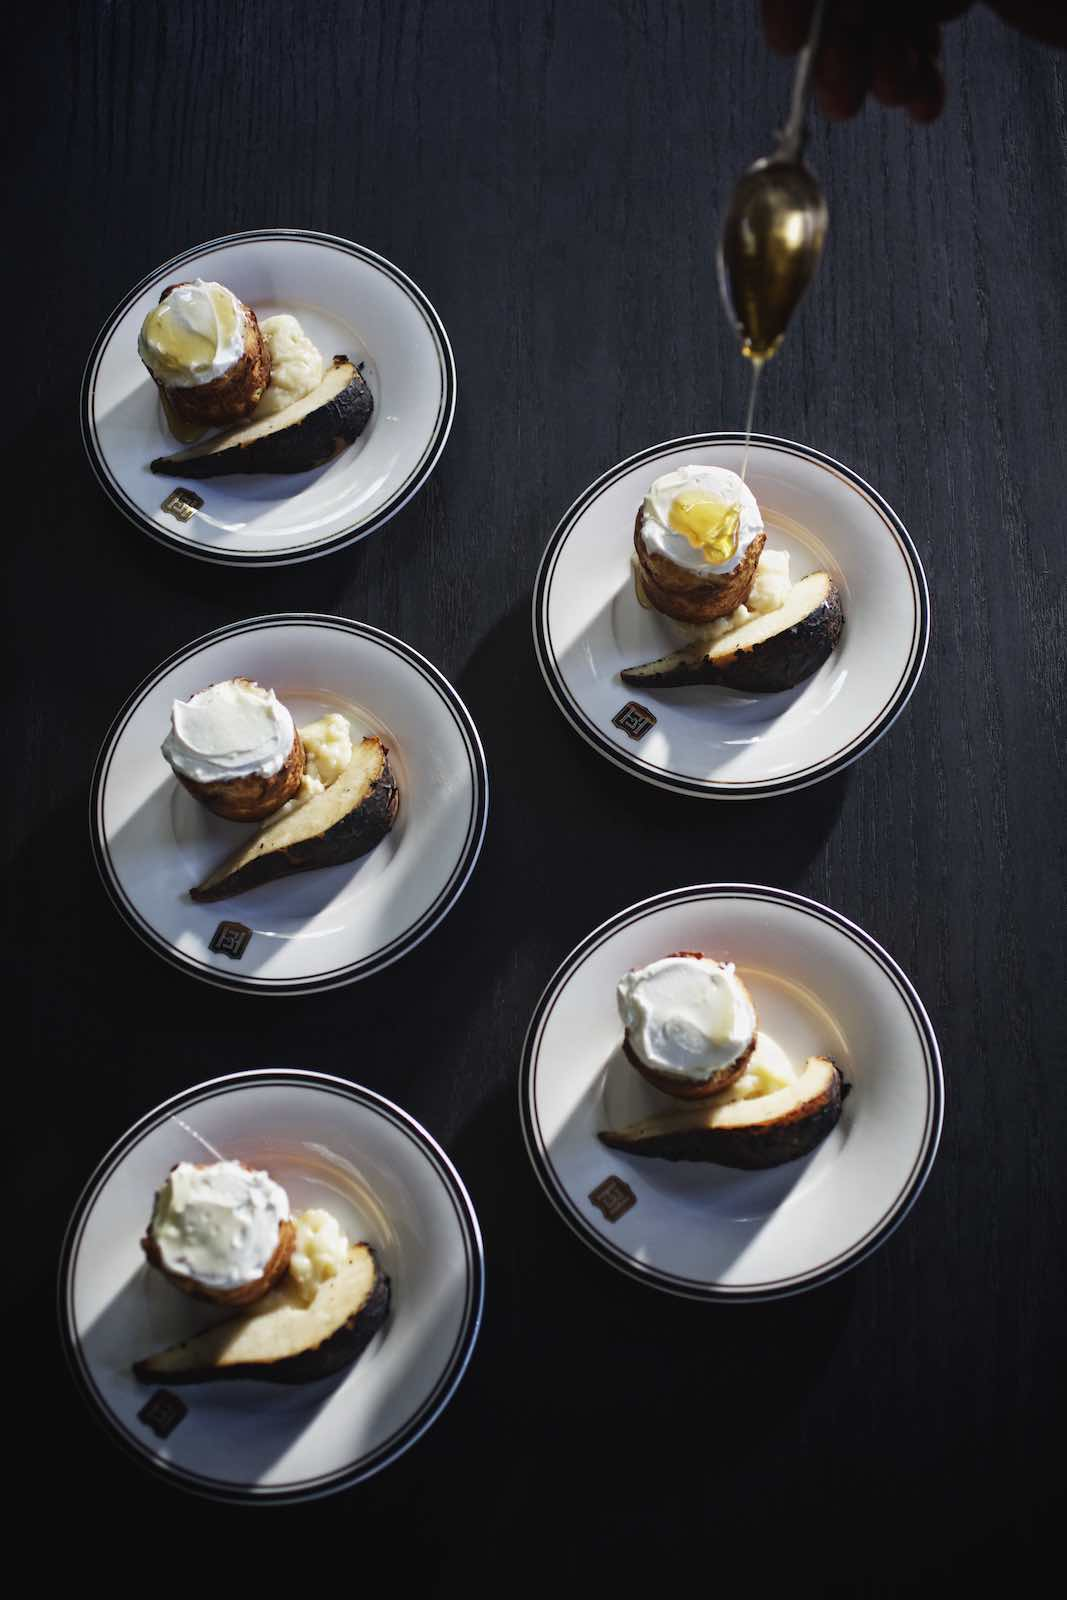 Jody Horton Photography - Delicate desserts drizzled with honey on a black table.